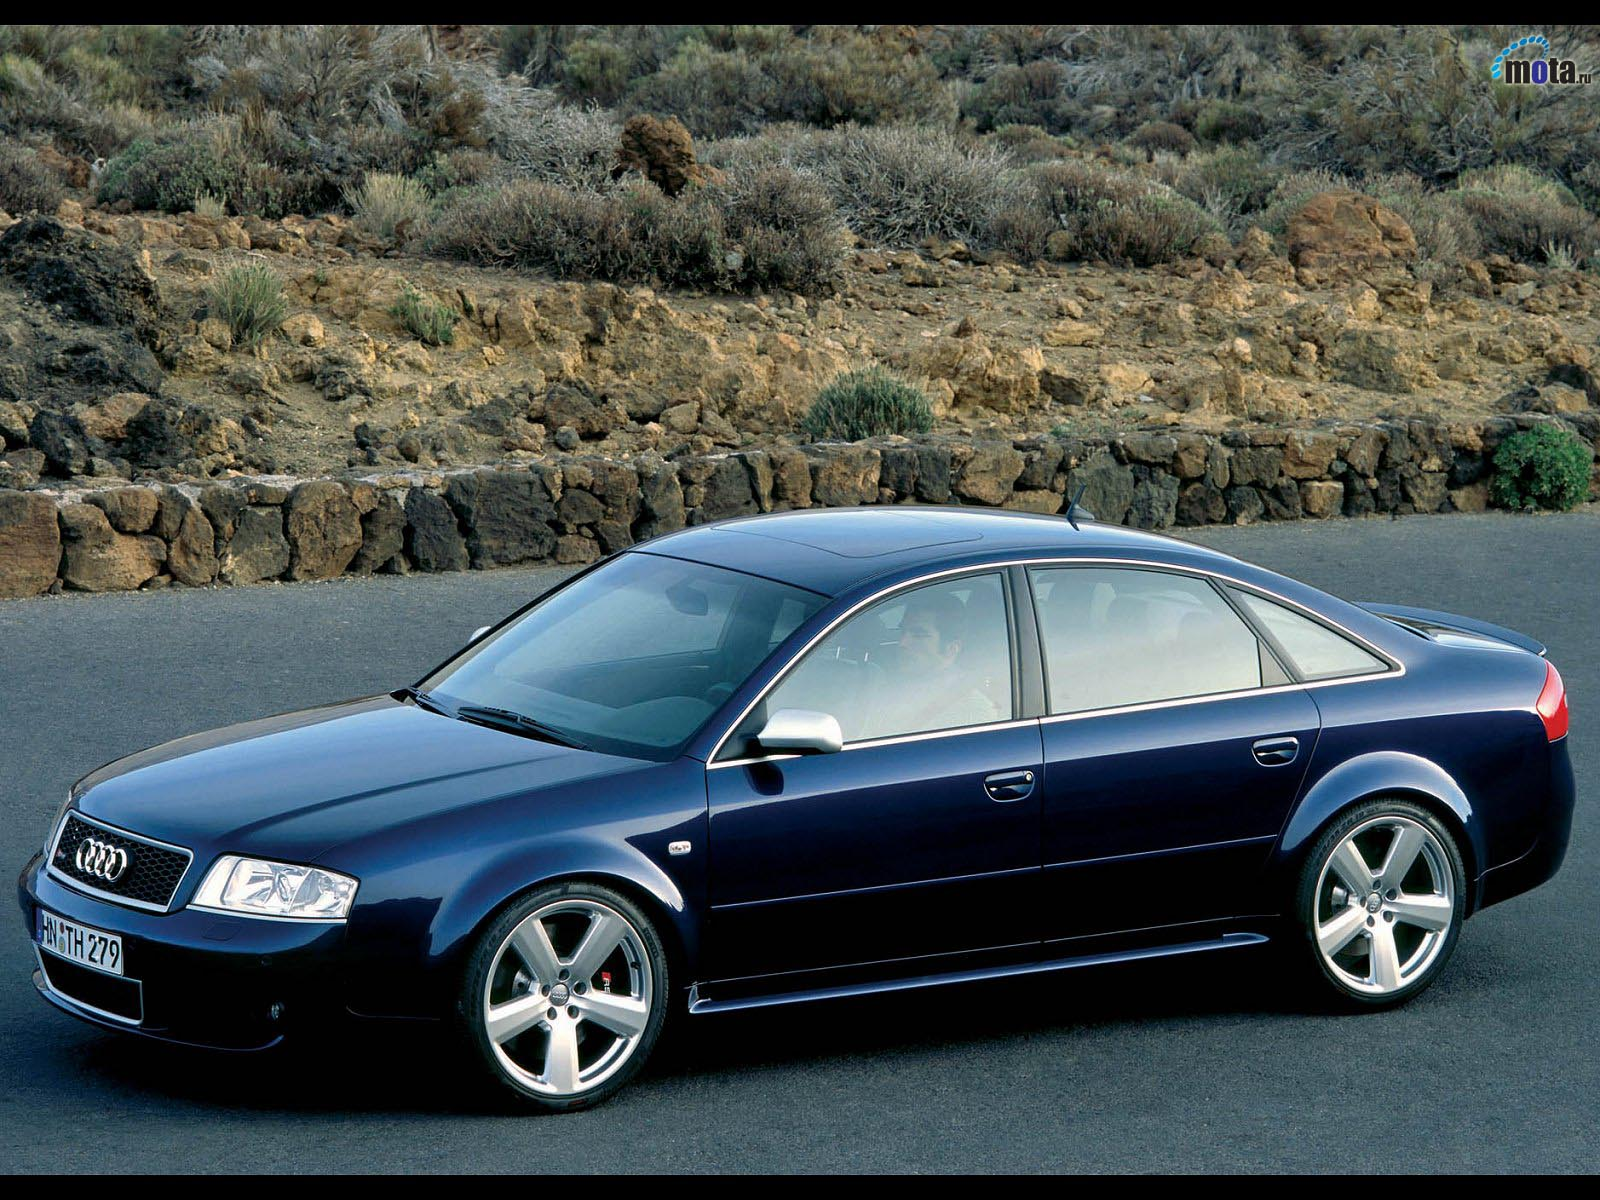 Download Wallpaper Audi Rs6 1600x1200 Audi Rs6 Sedan